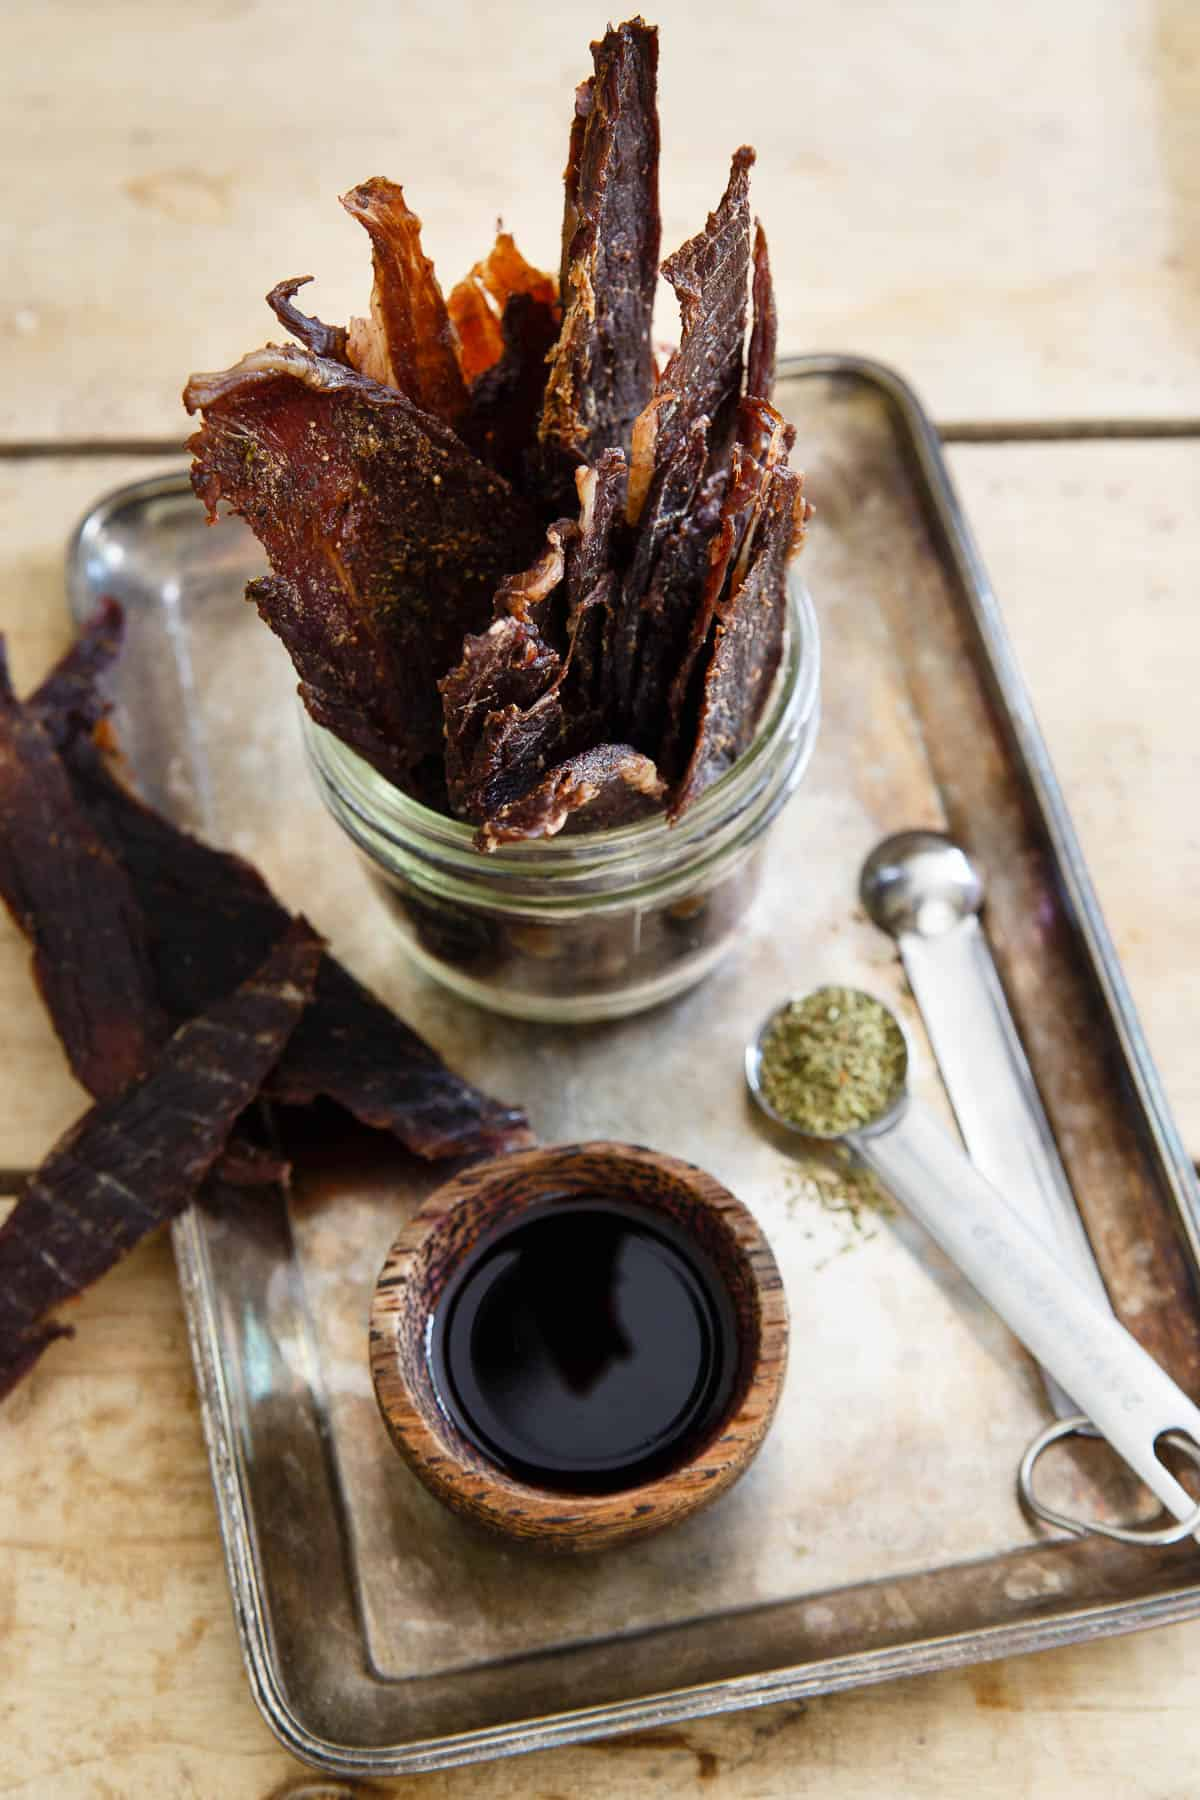 Lamb Jerky seasoned with oregano, garlic, onion, worcestershire and soy sauce is a healthy, high protein snack to keep on hand while out and about.